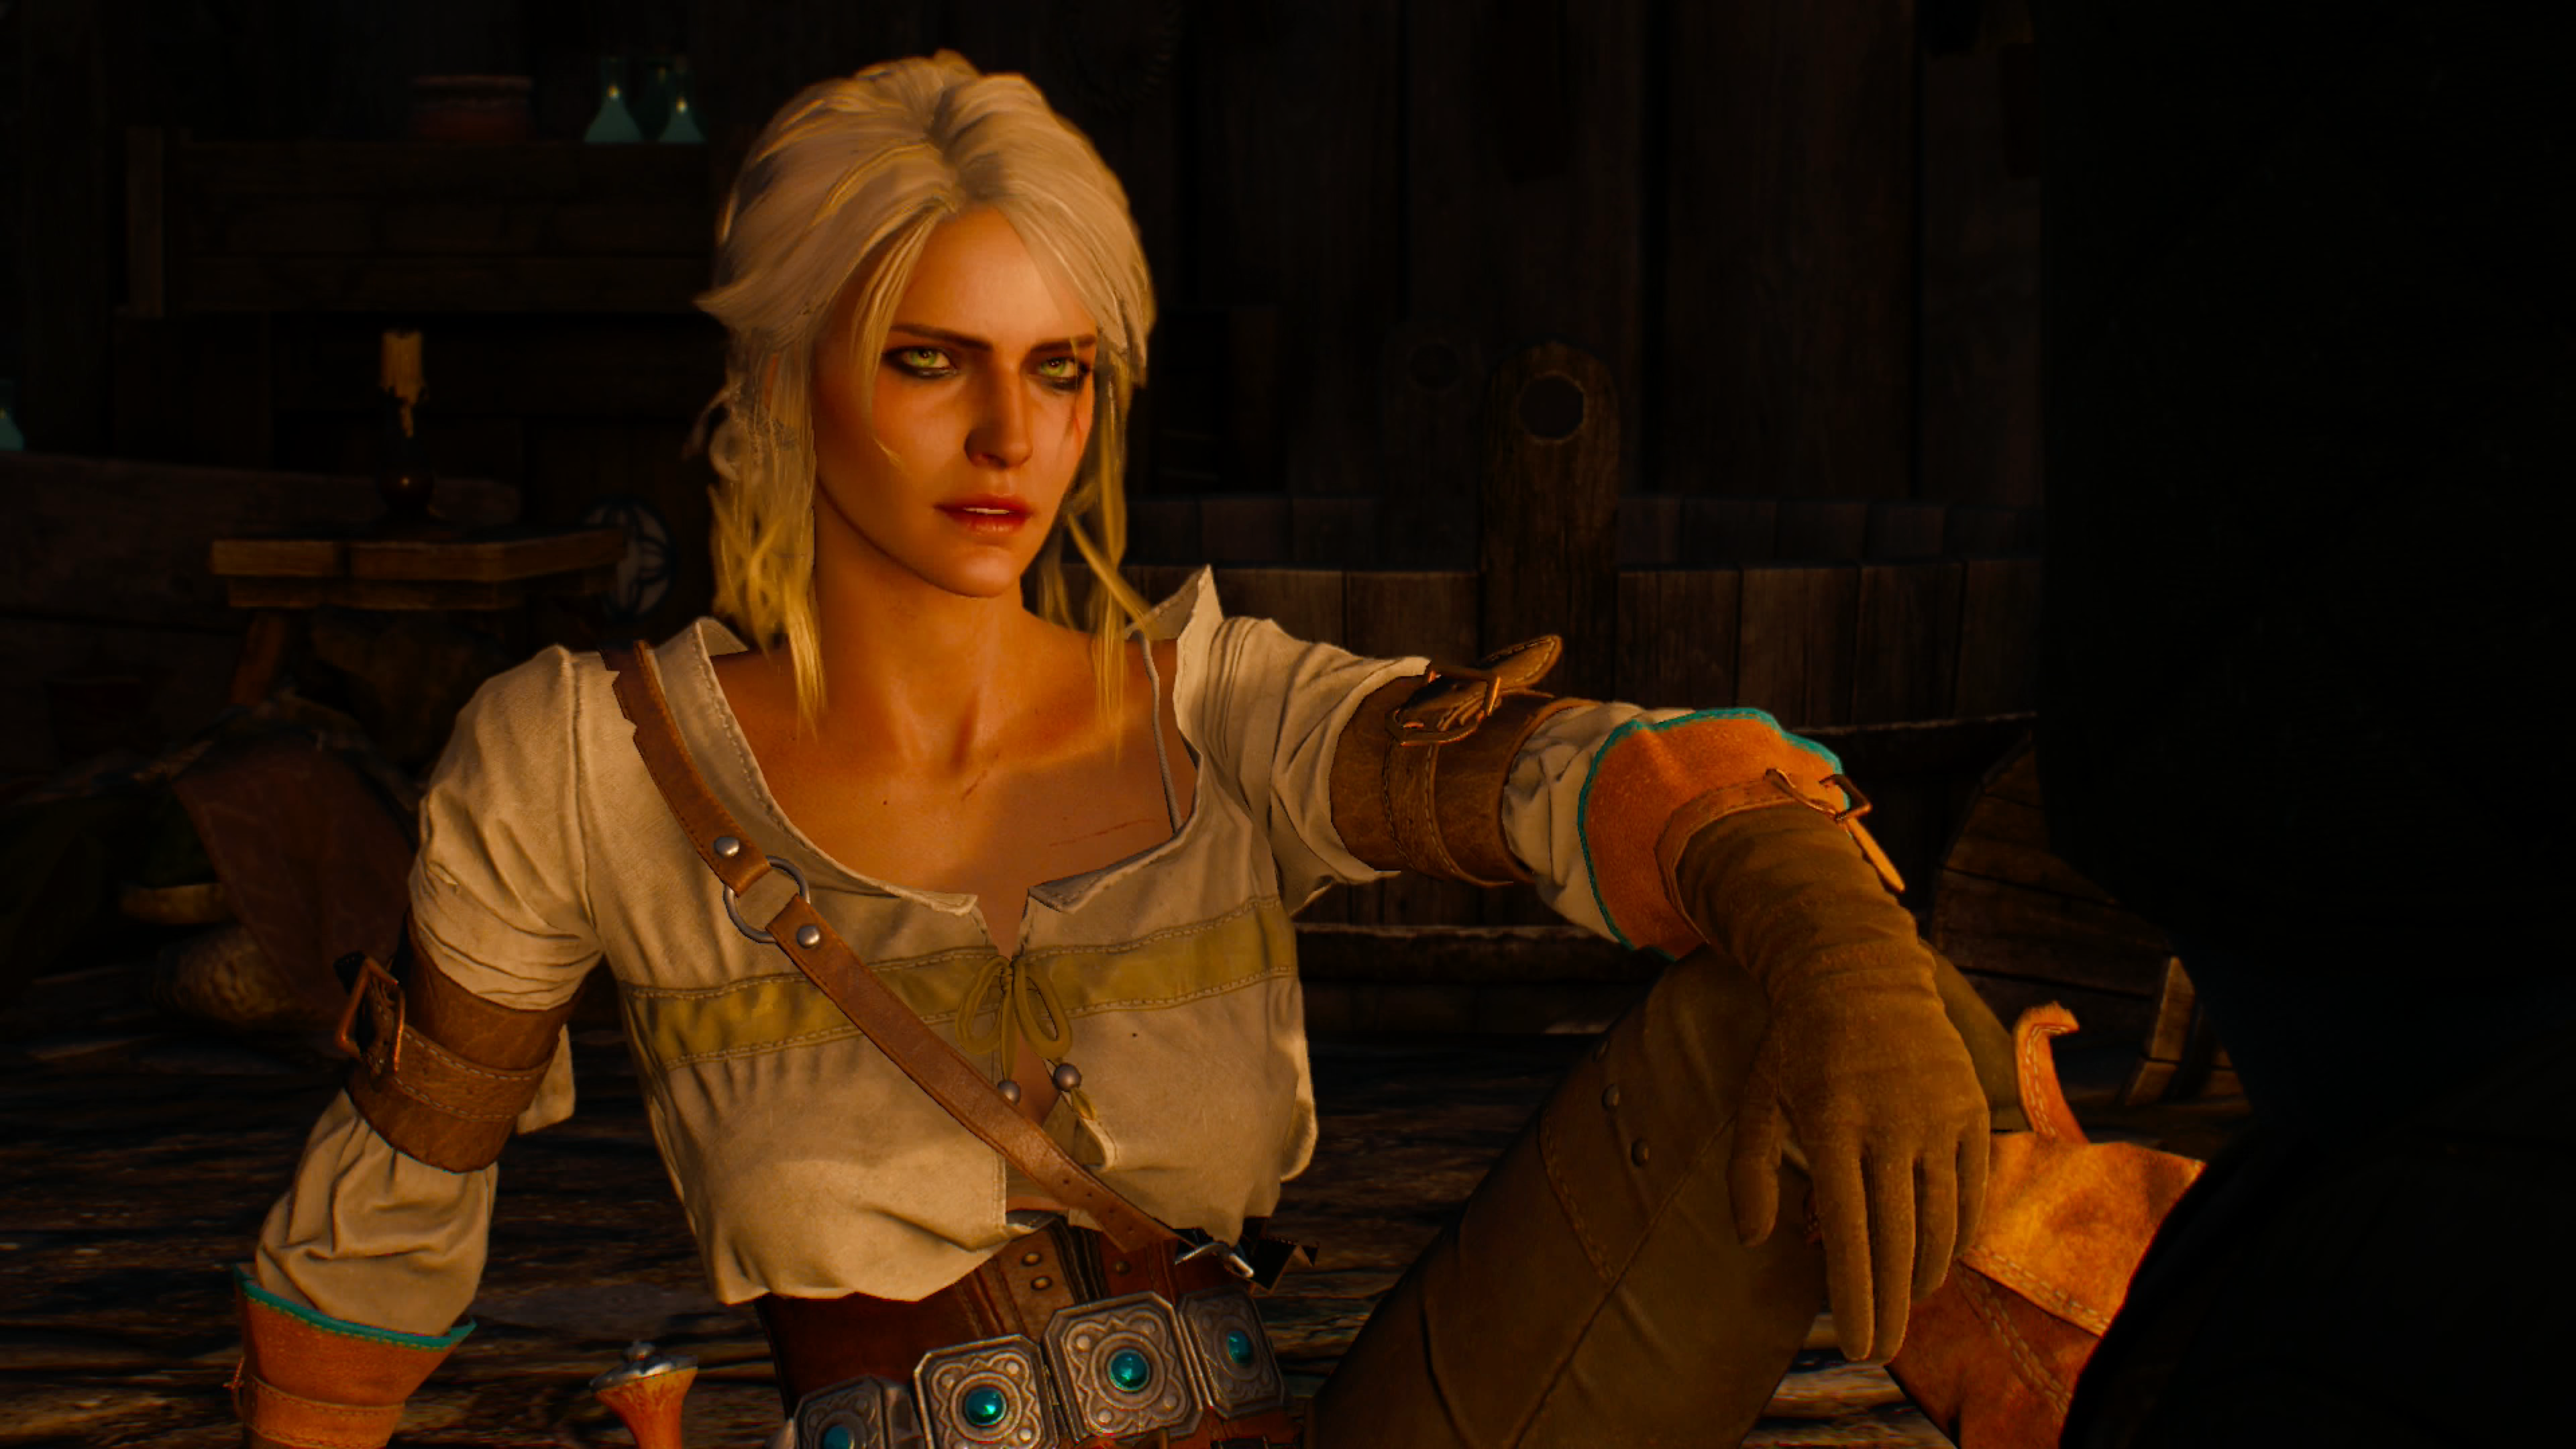 The Witcher 3 Playing as Ciri, Fighting a Werewolf